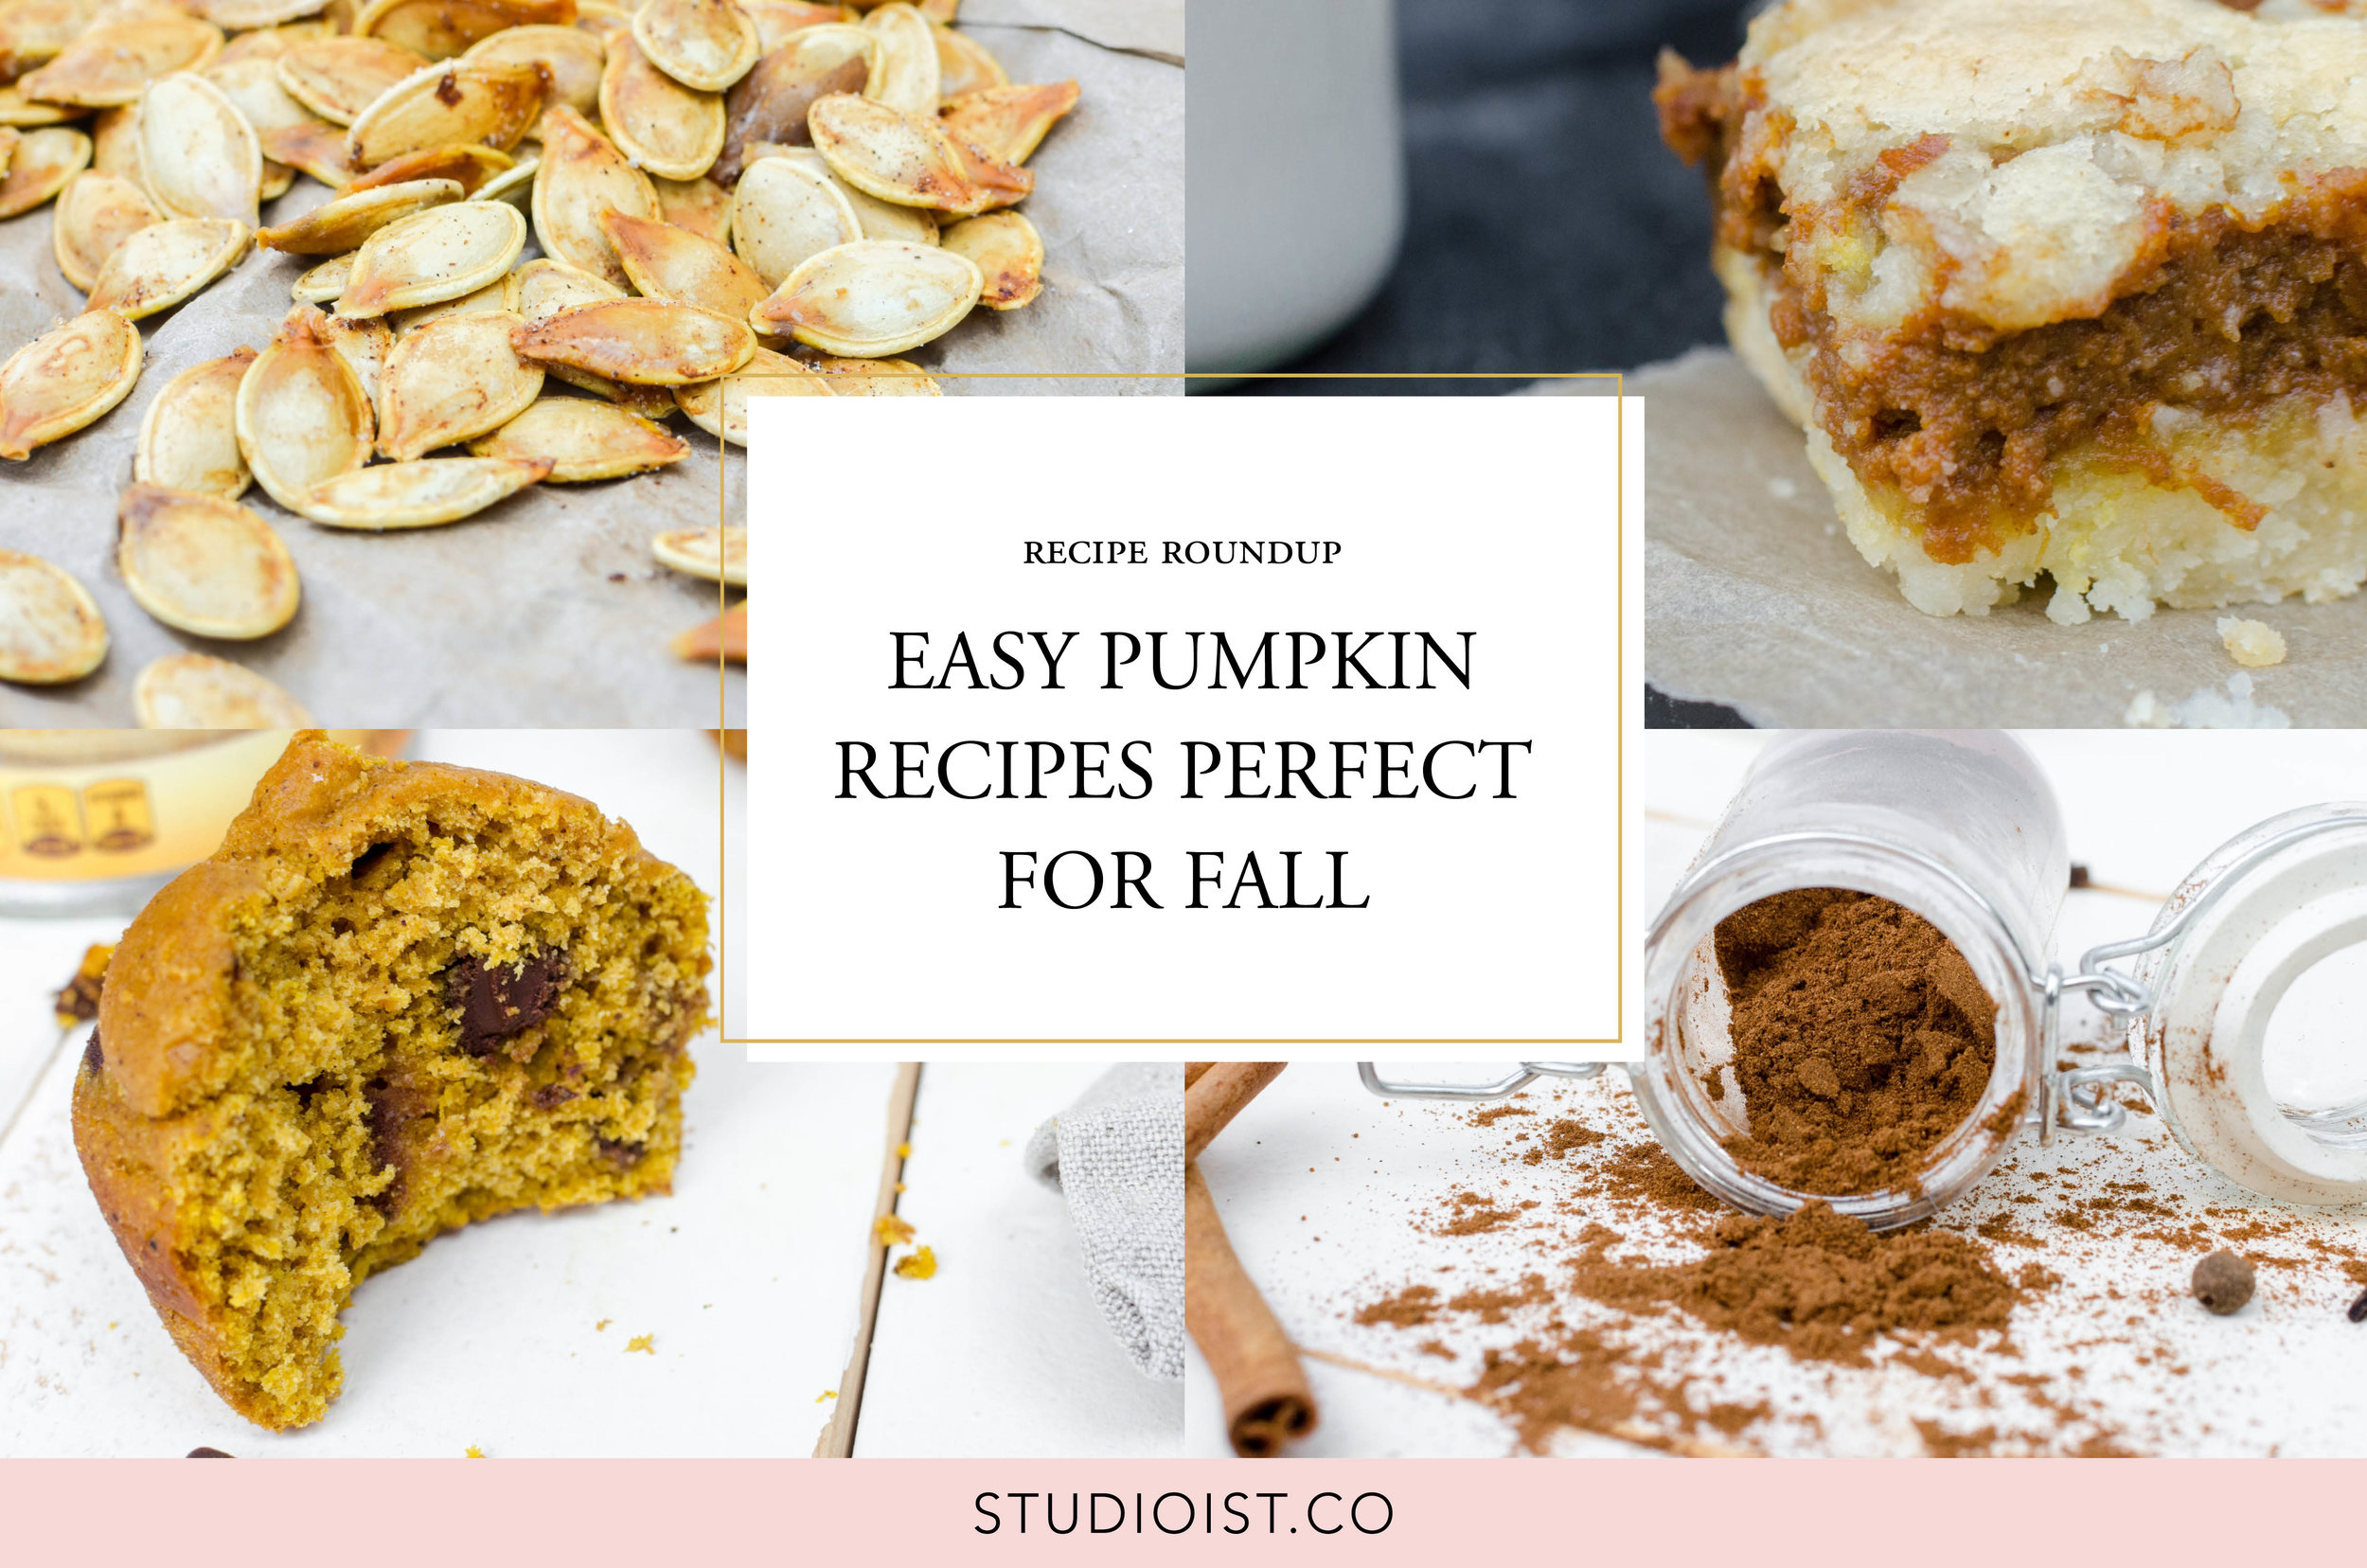 Studioist_Food Cover Photos_Pumpkin Recipes 2018.jpg